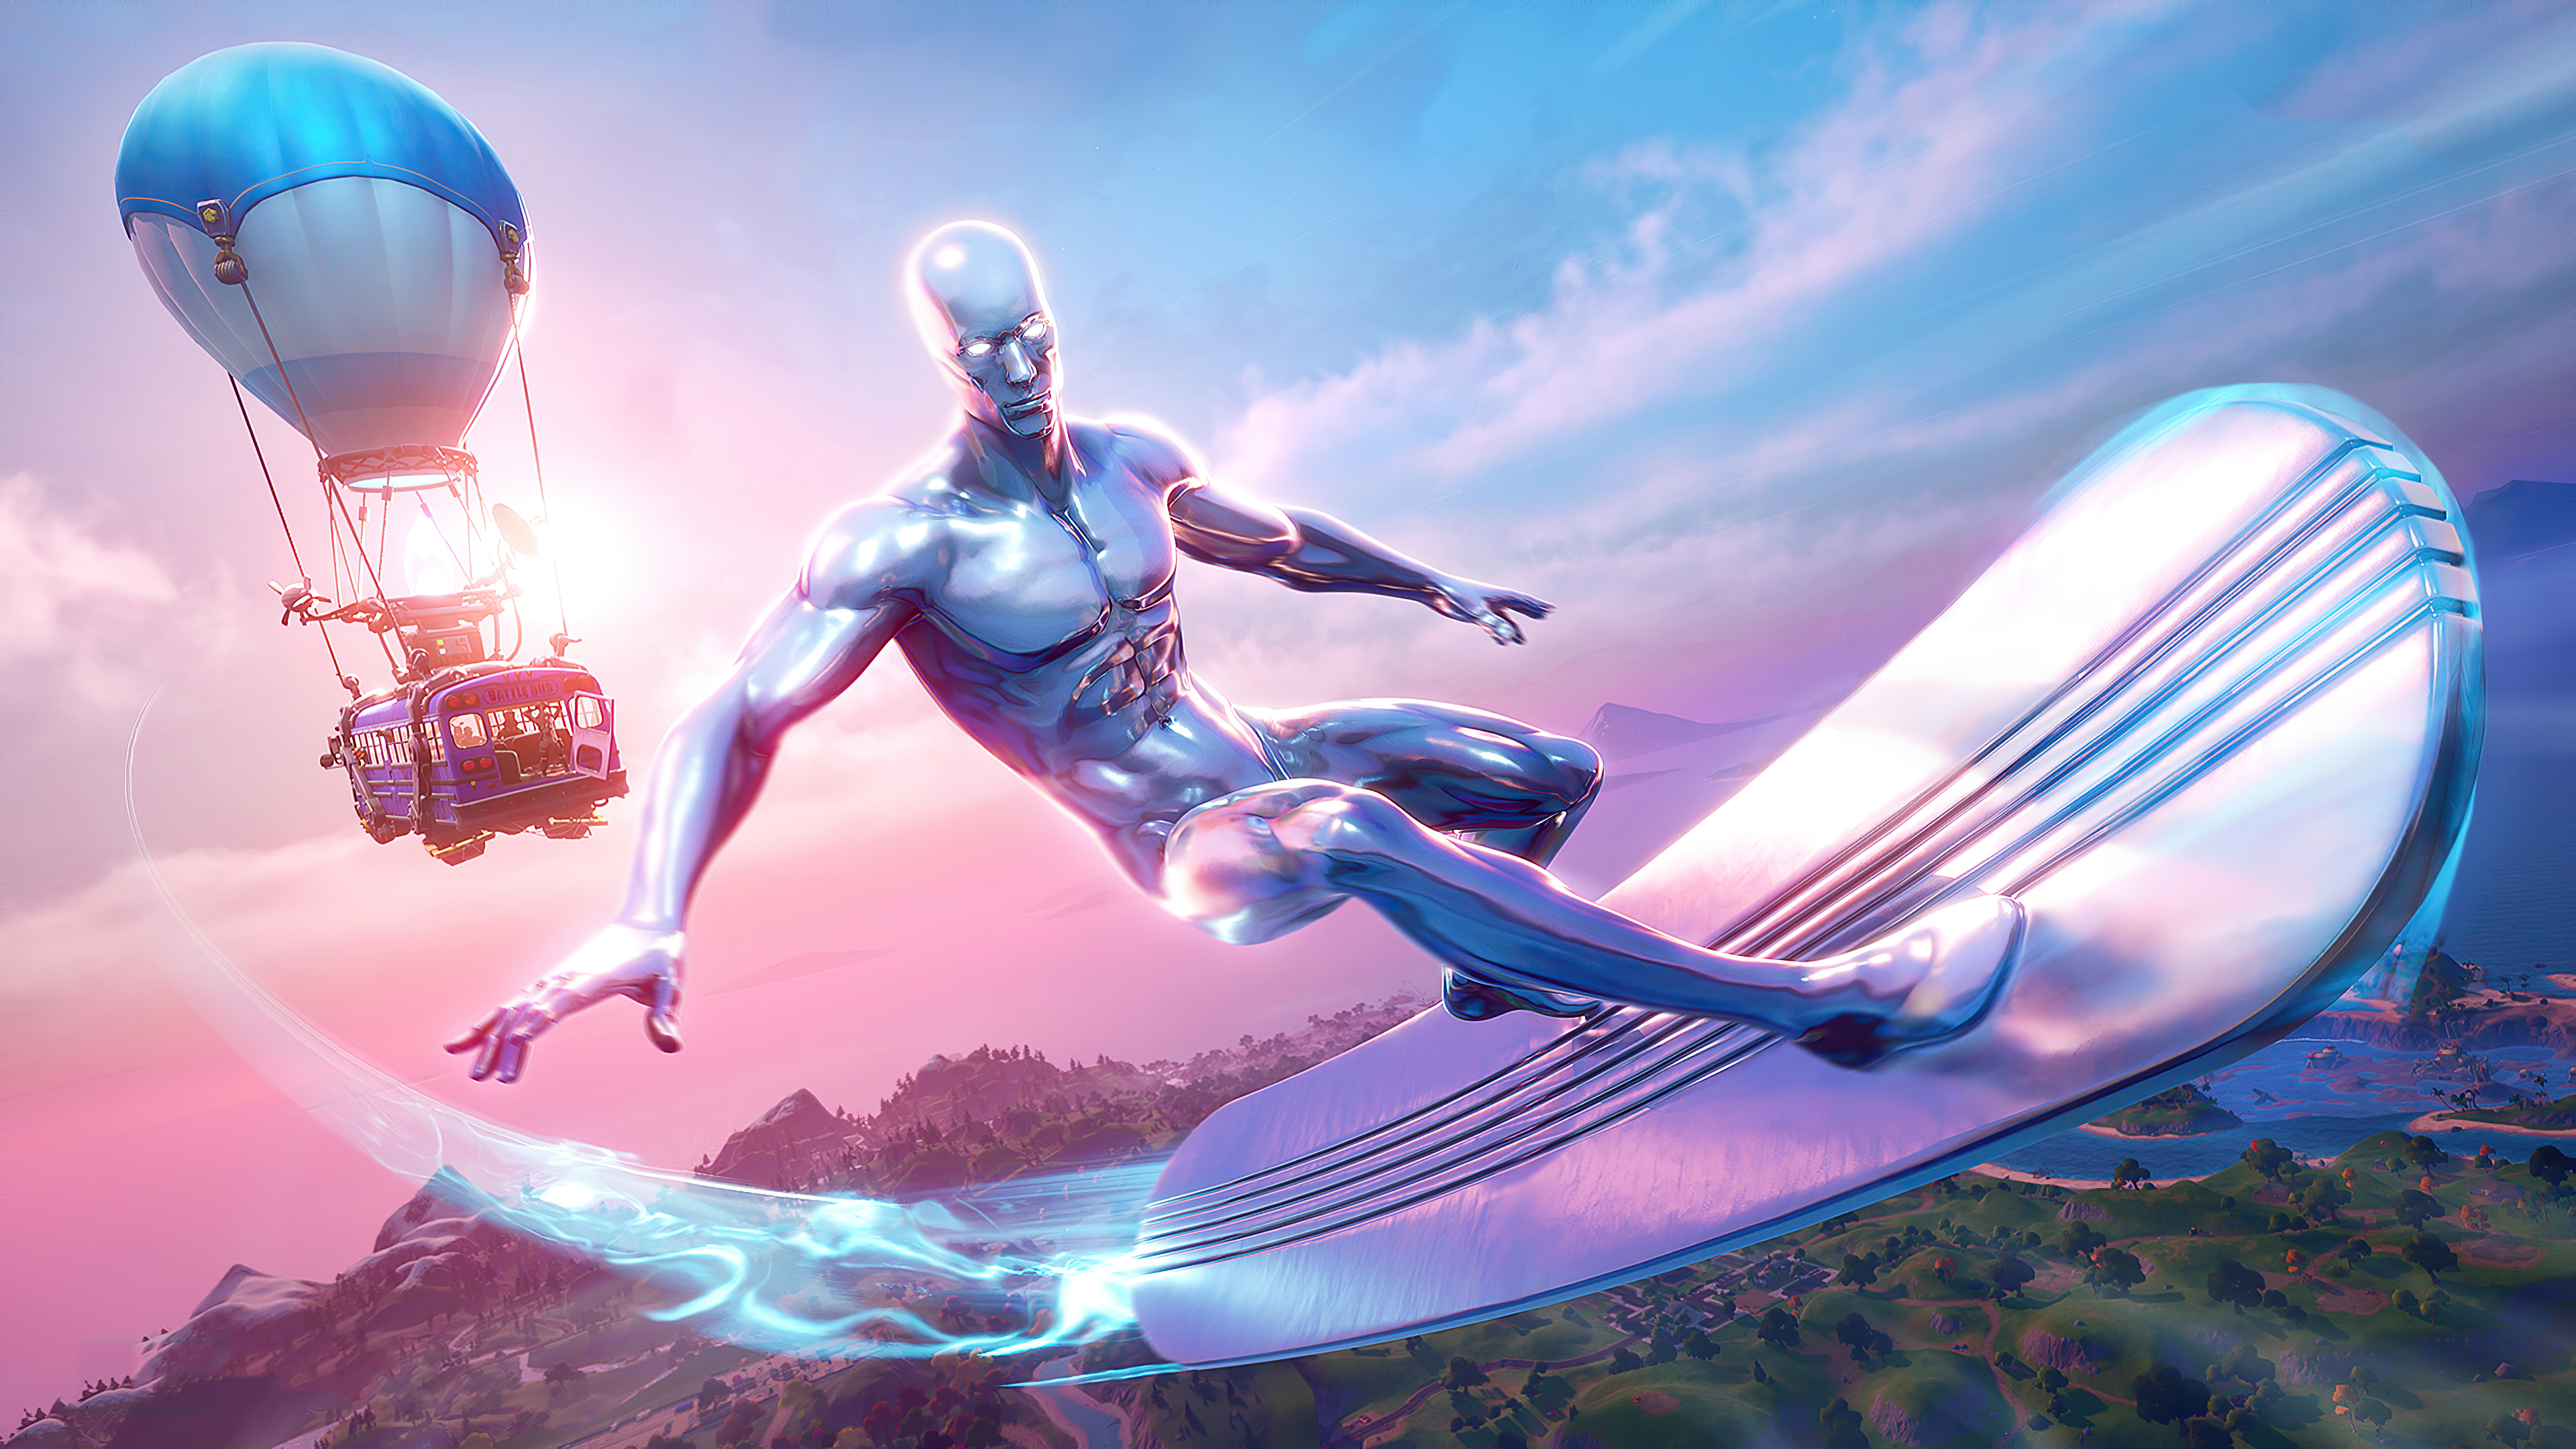 2560x1080 Silver Surfer Fortnite Season 4 2560x1080 Resolution Wallpaper Hd Games 4k Wallpapers Images Photos And Background